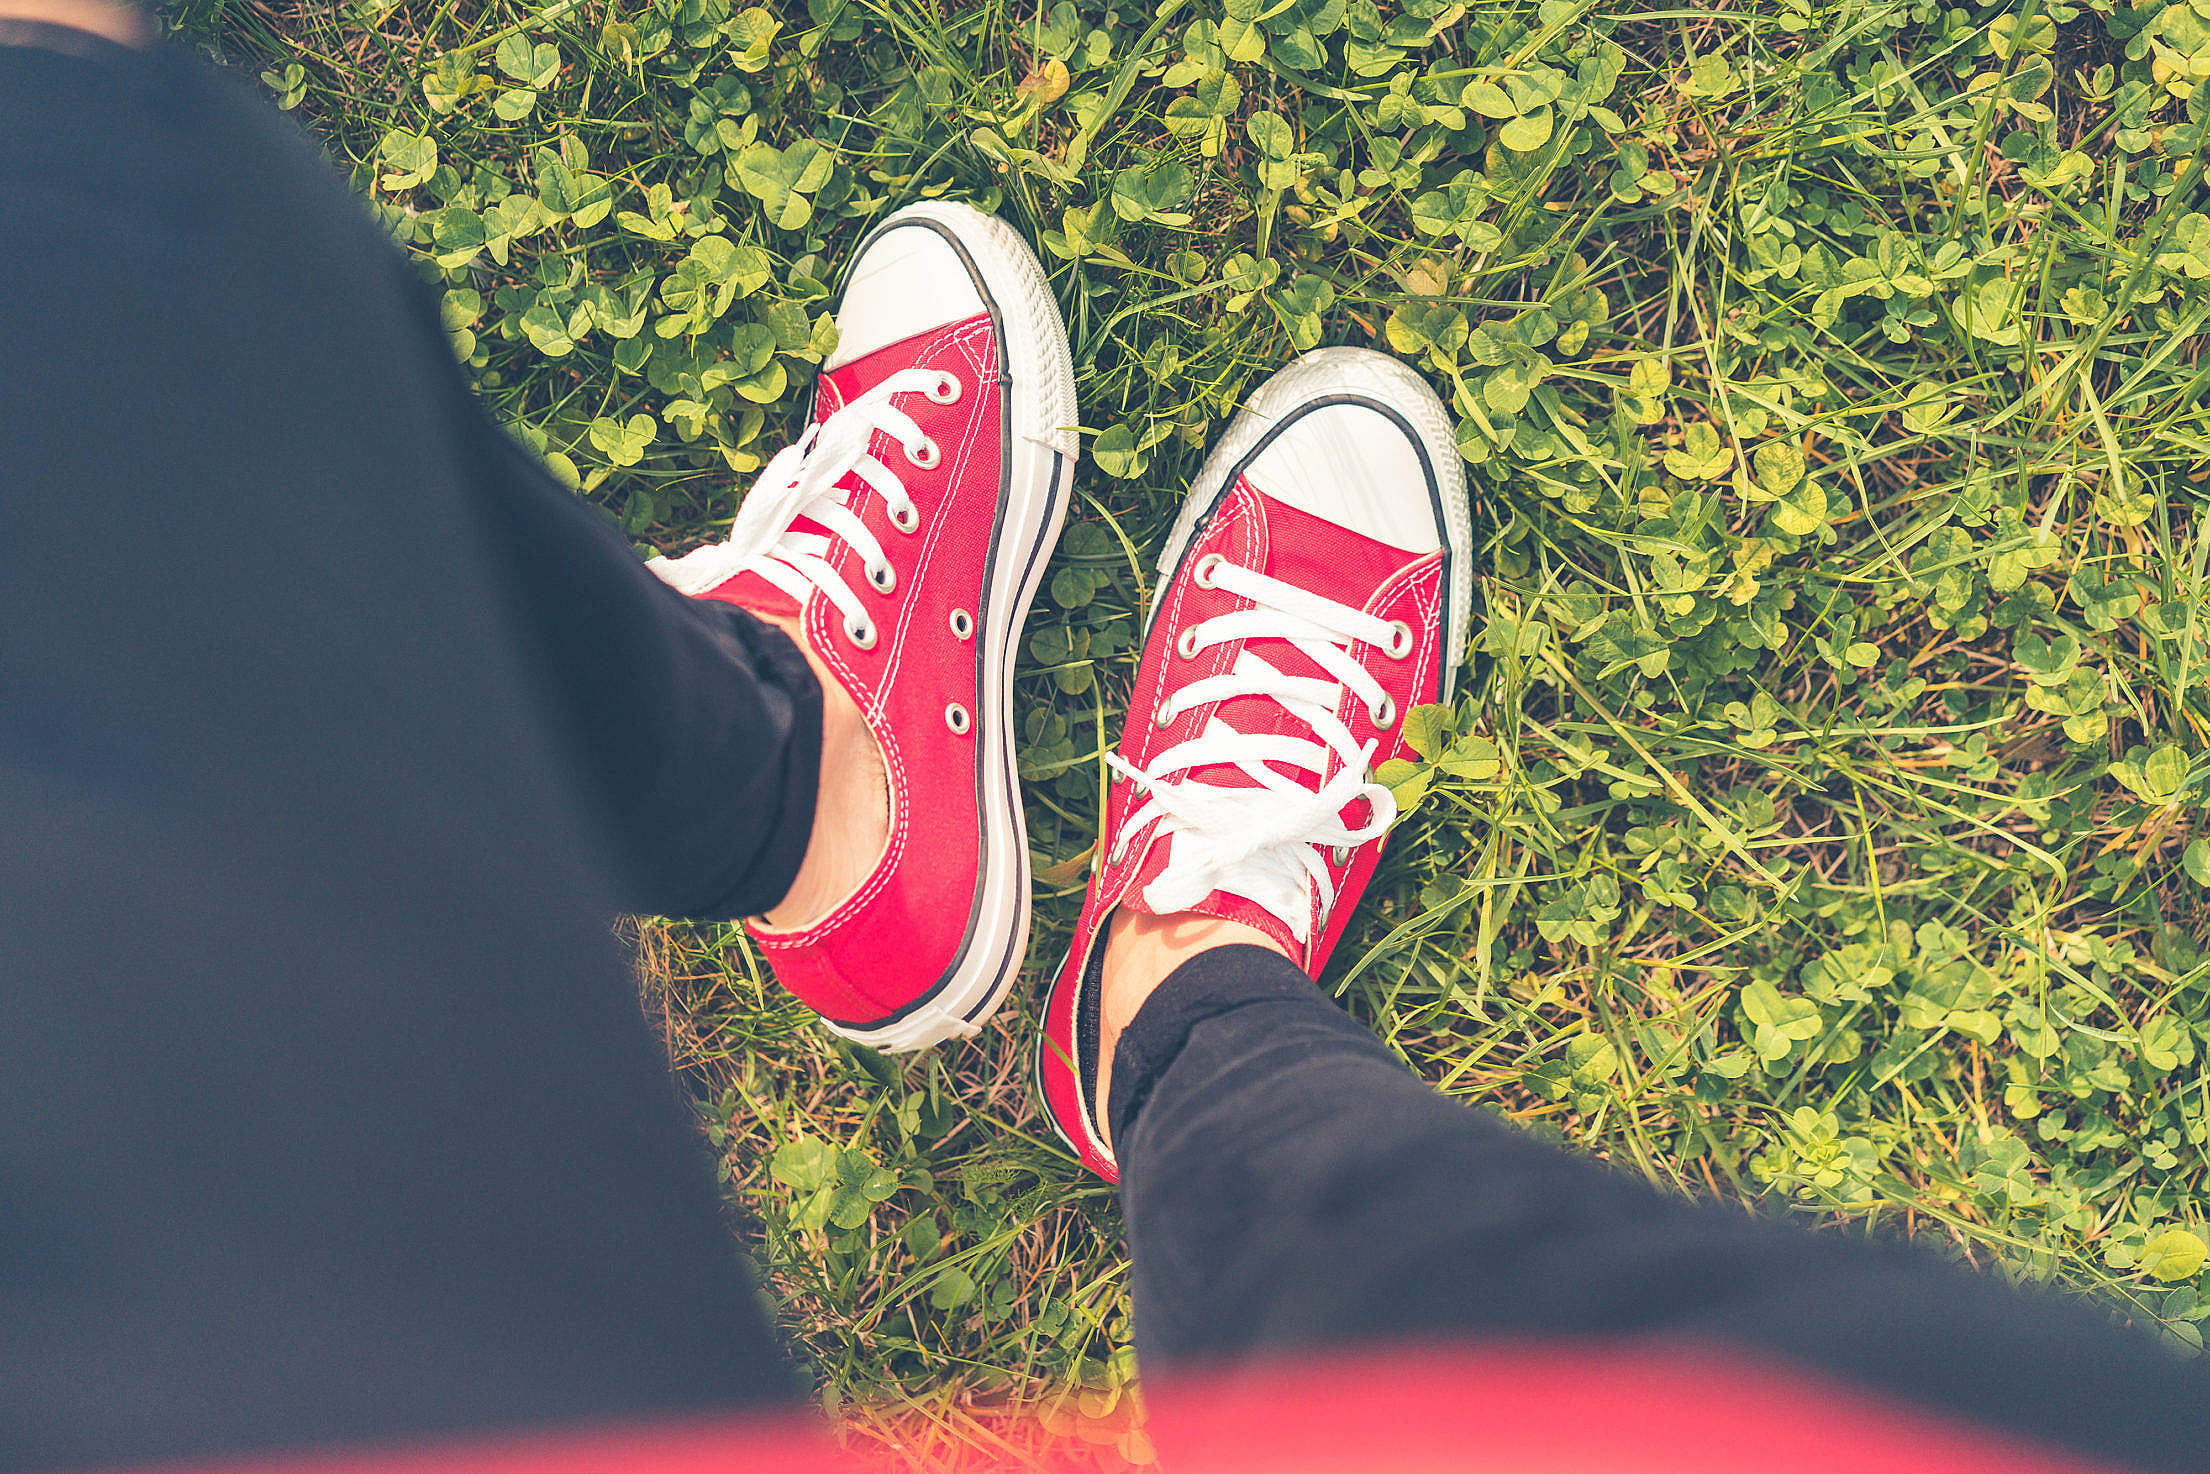 Girl with Red Shoes in Grass FPV #2 Free Stock Photo